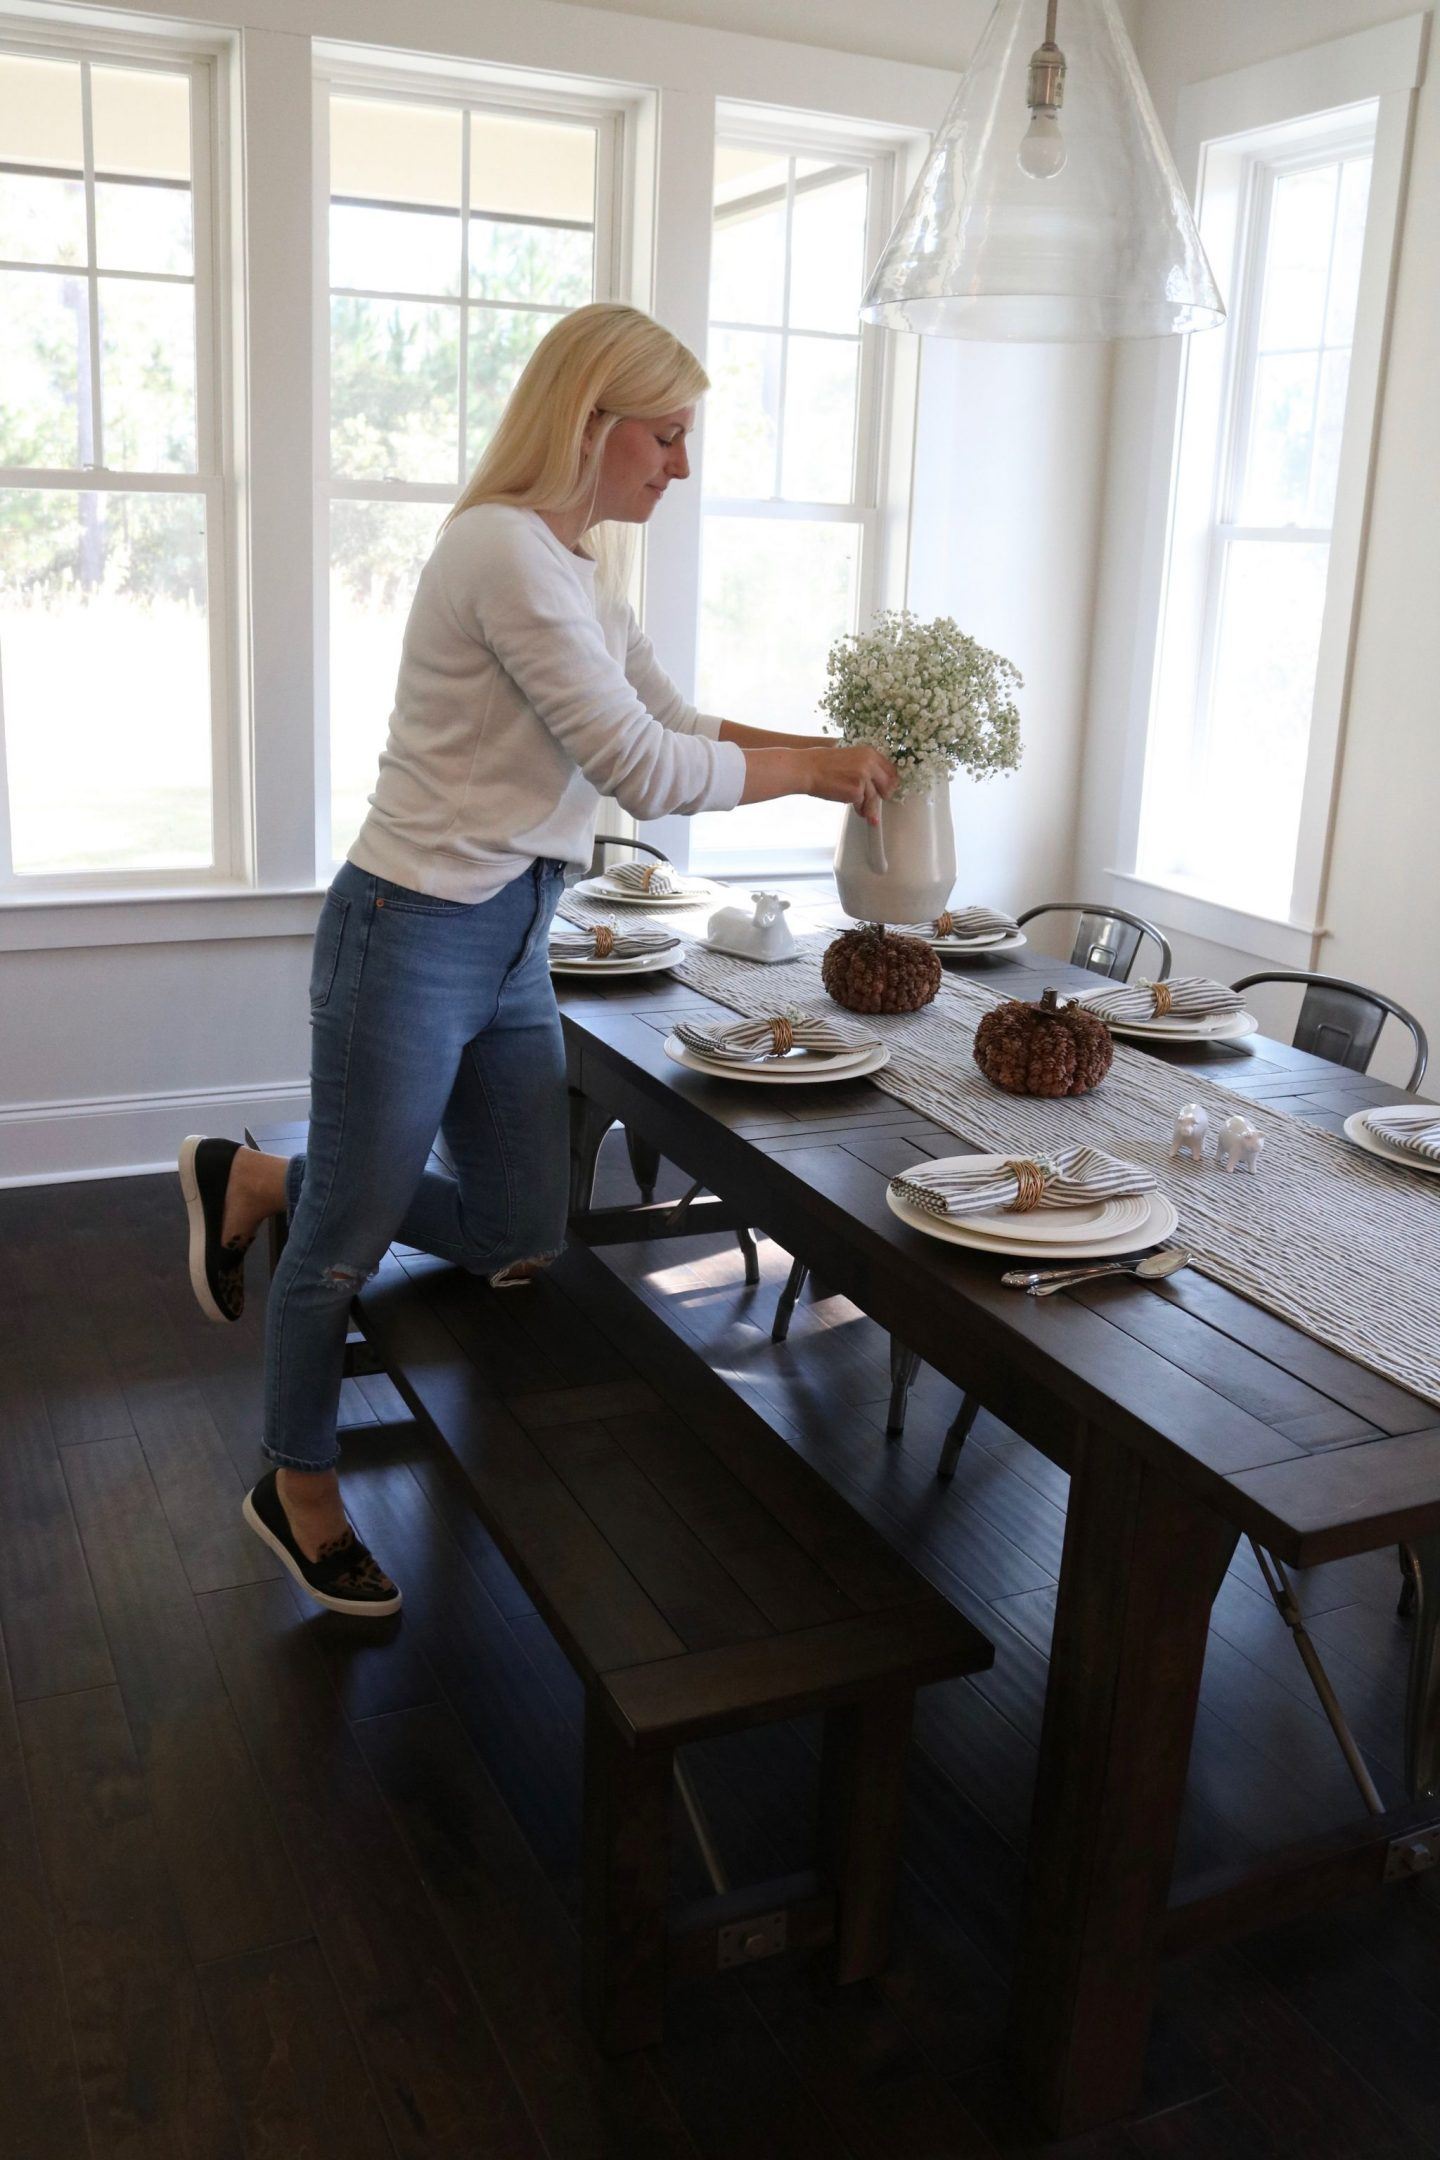 How to decorate for Thanksgiving - Tabletop Decor for Thanksgiving